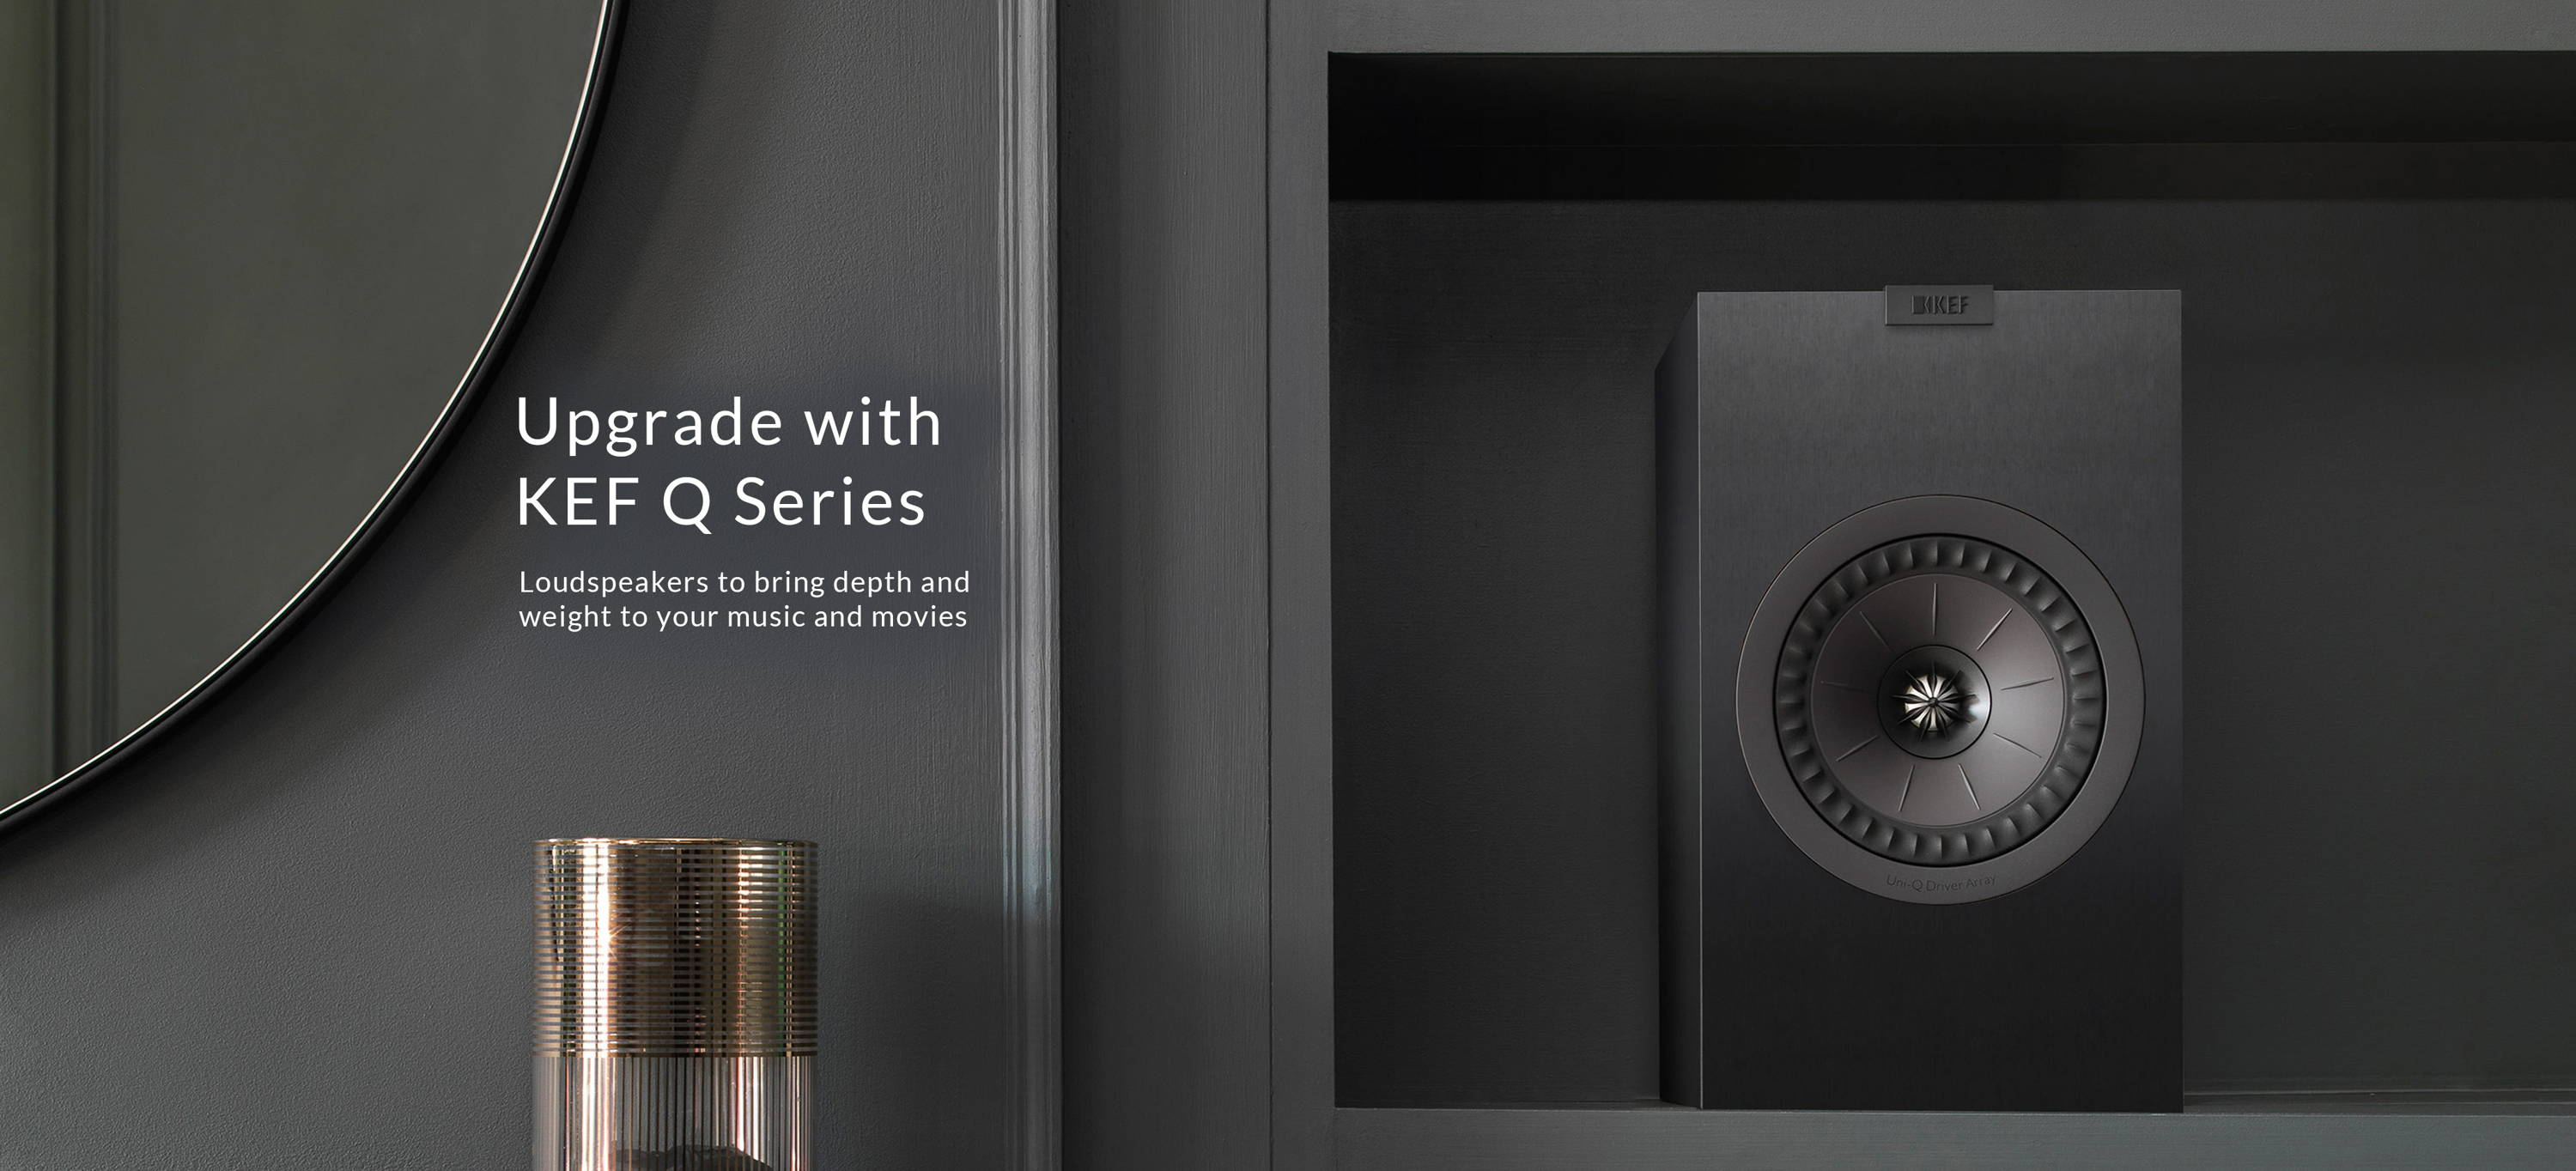 KEF Q Series Speakers